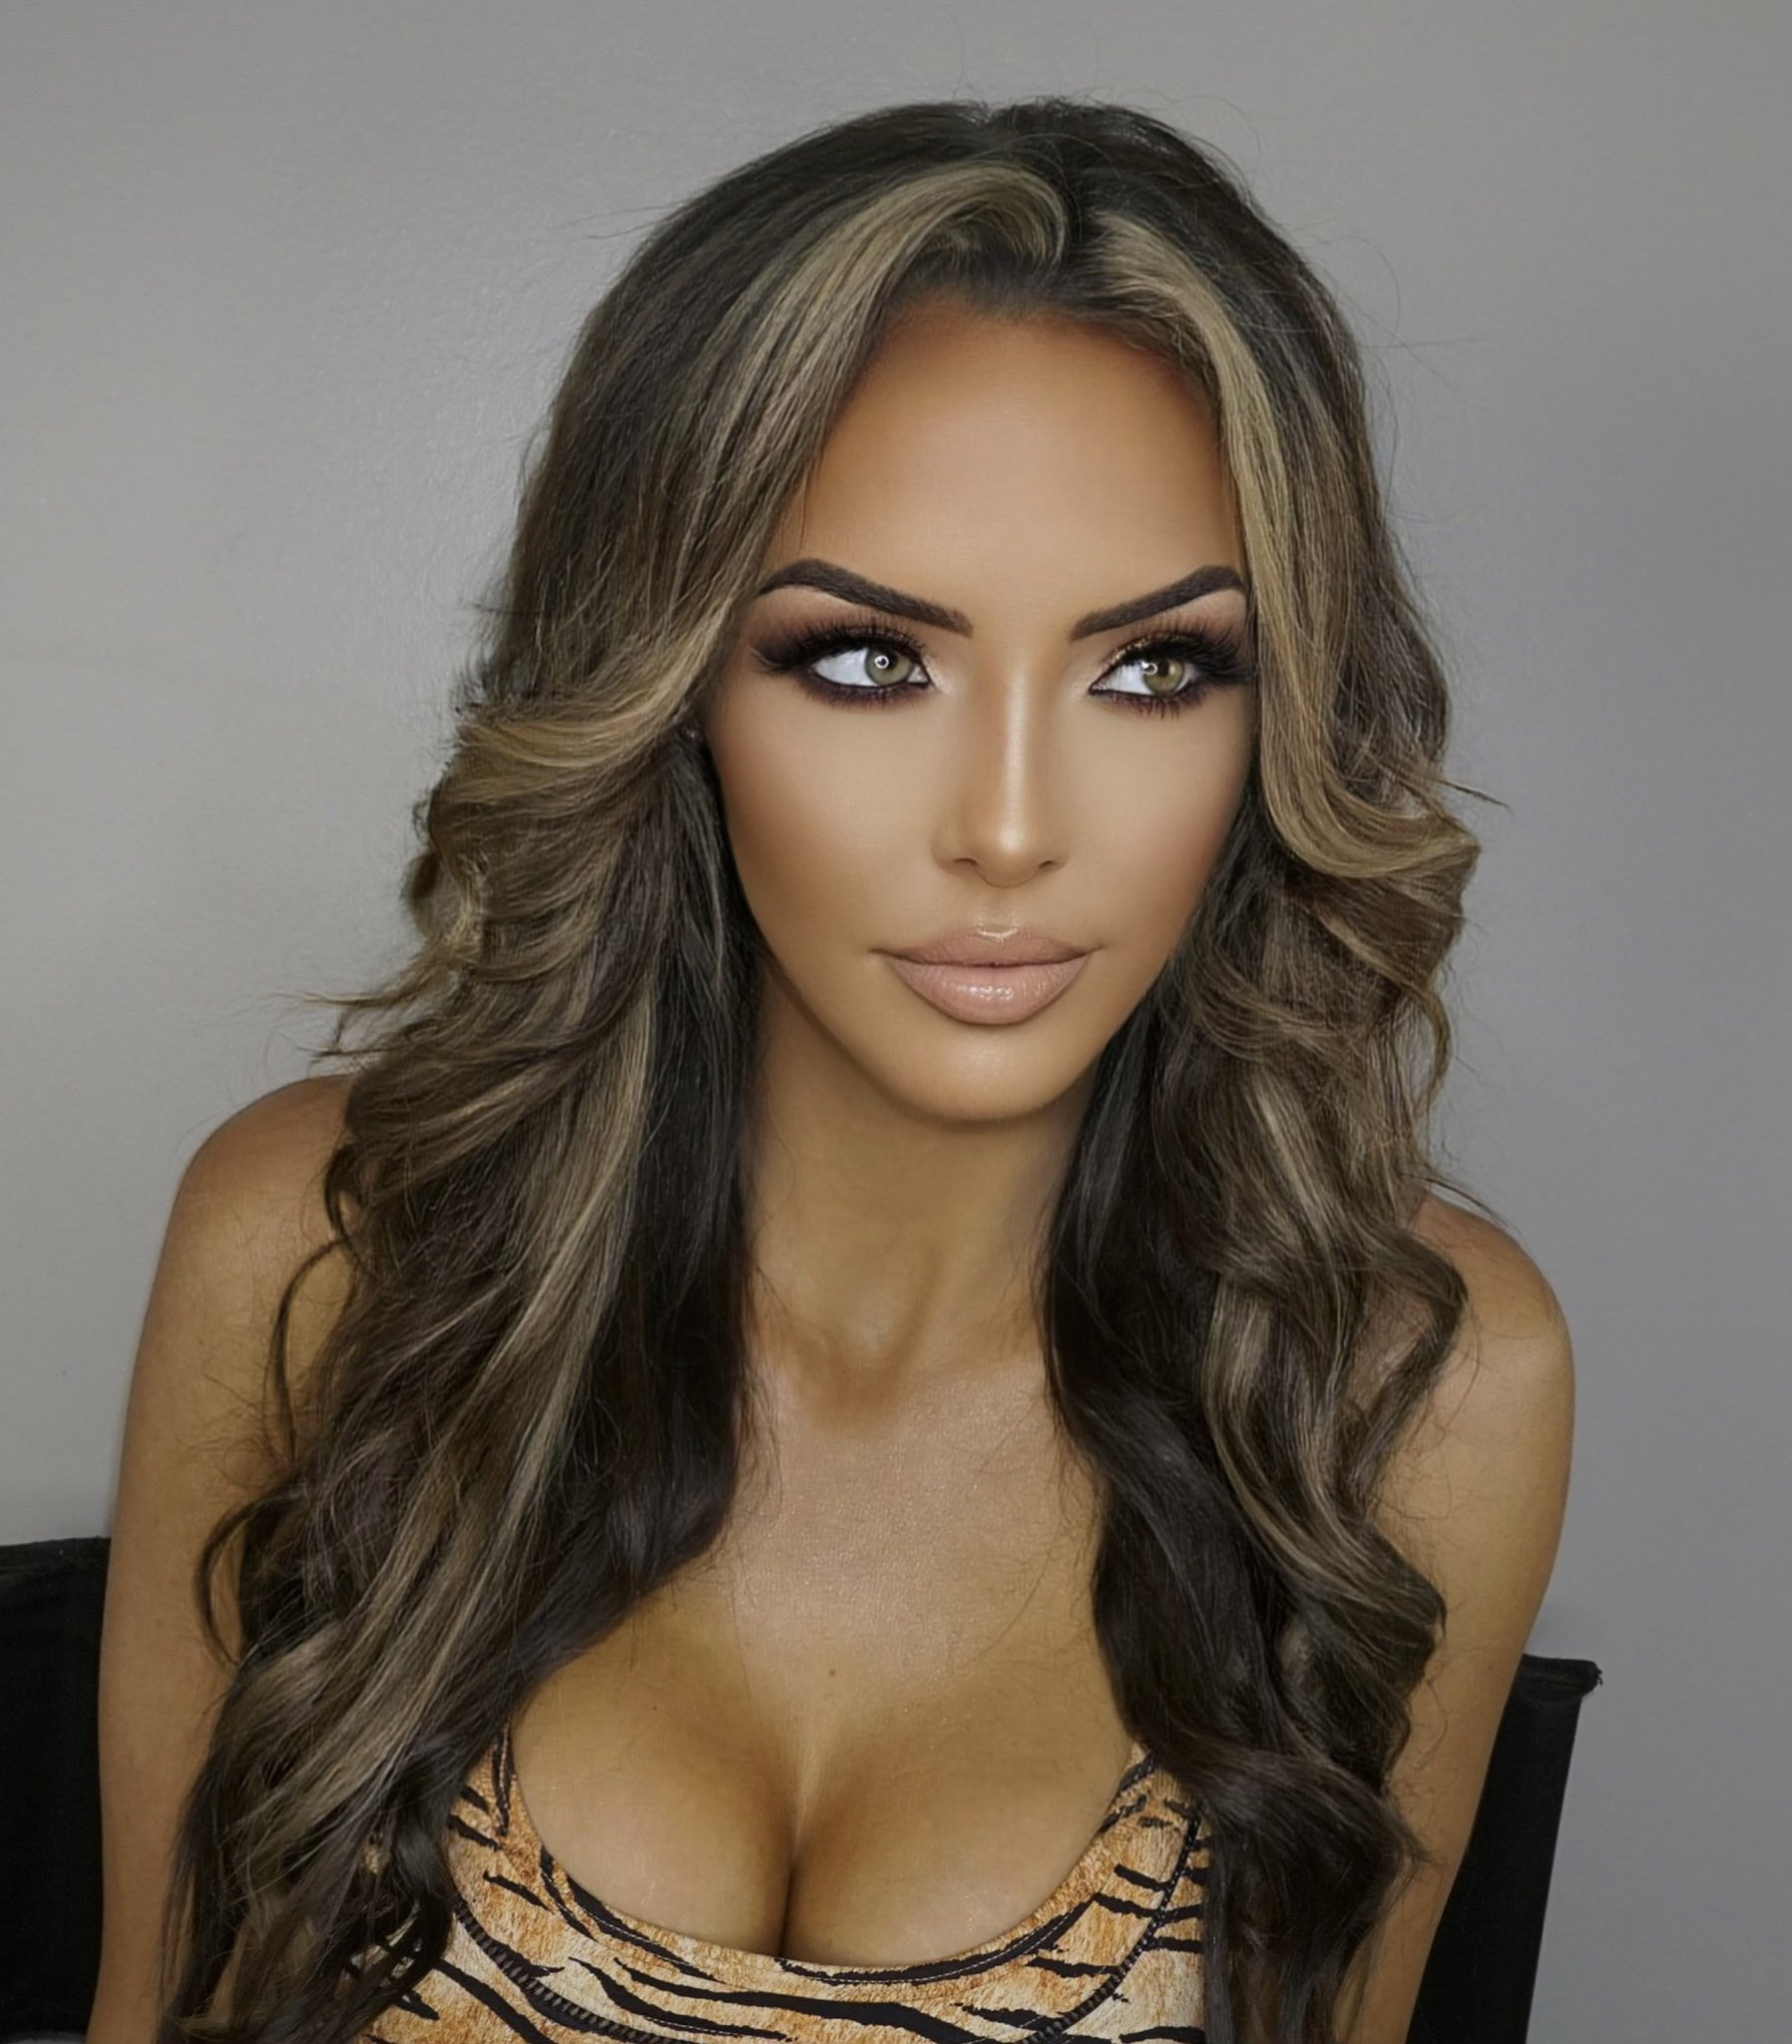 Peyton Royce Shows Off New Look Following WWE Departure 163